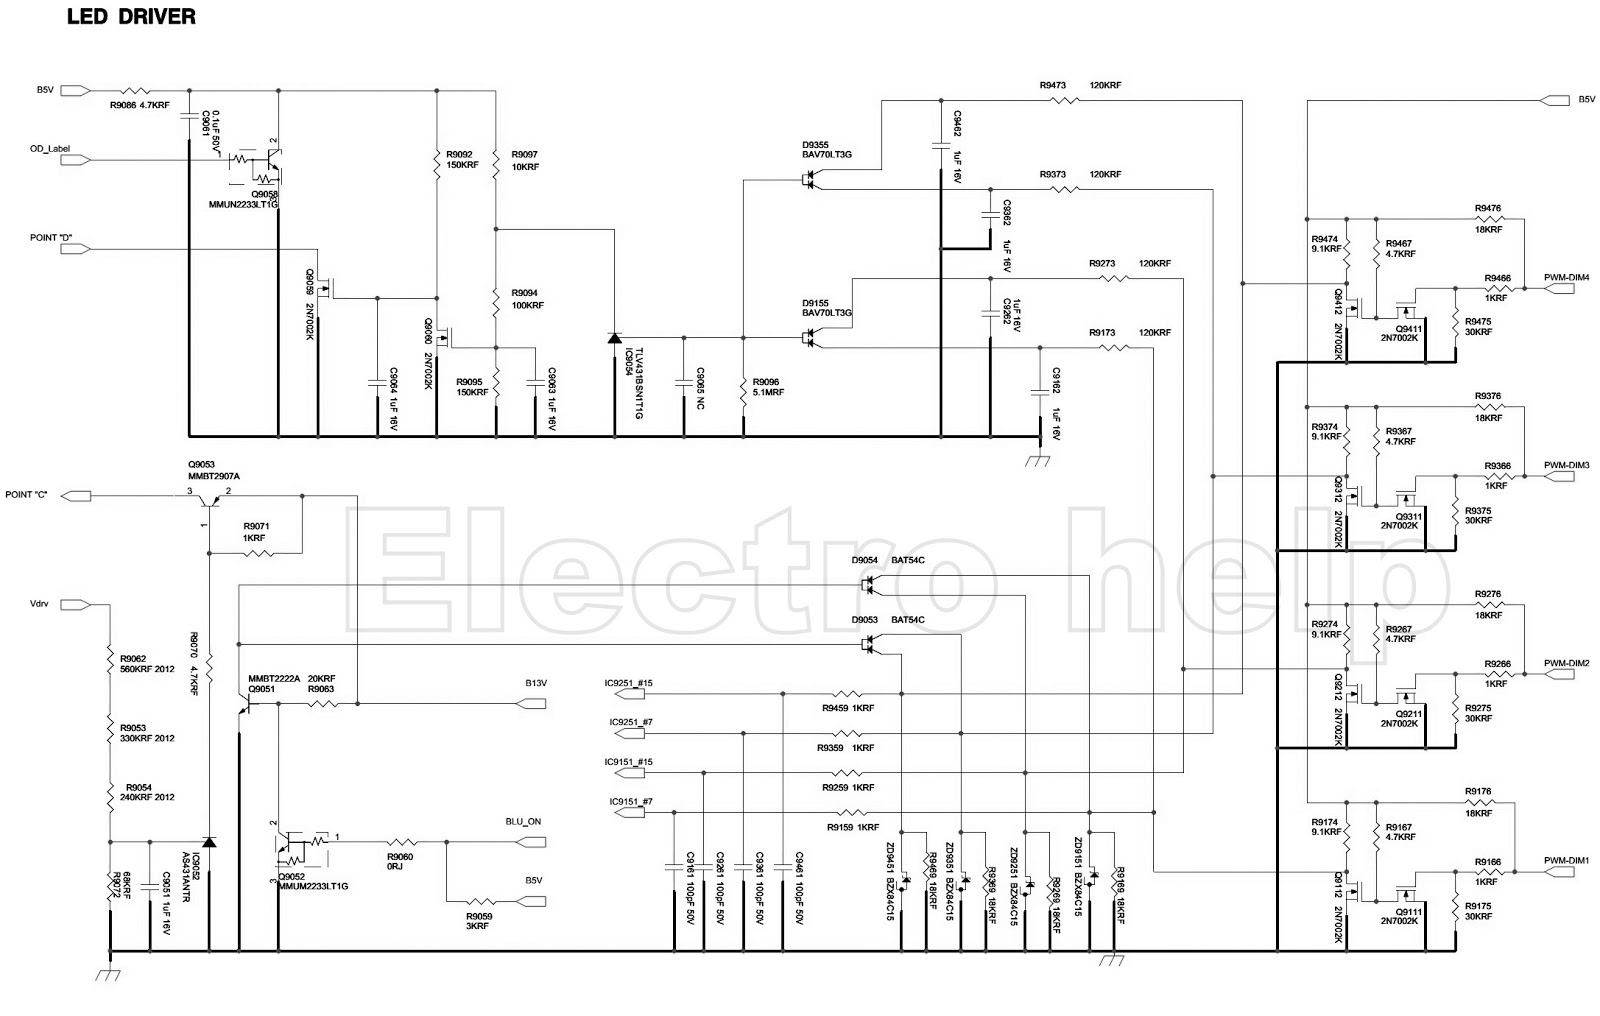 led lamp driver circuit diagram bpt door entry handset wiring electro help samsung bn44 00428b  lcd tv smps